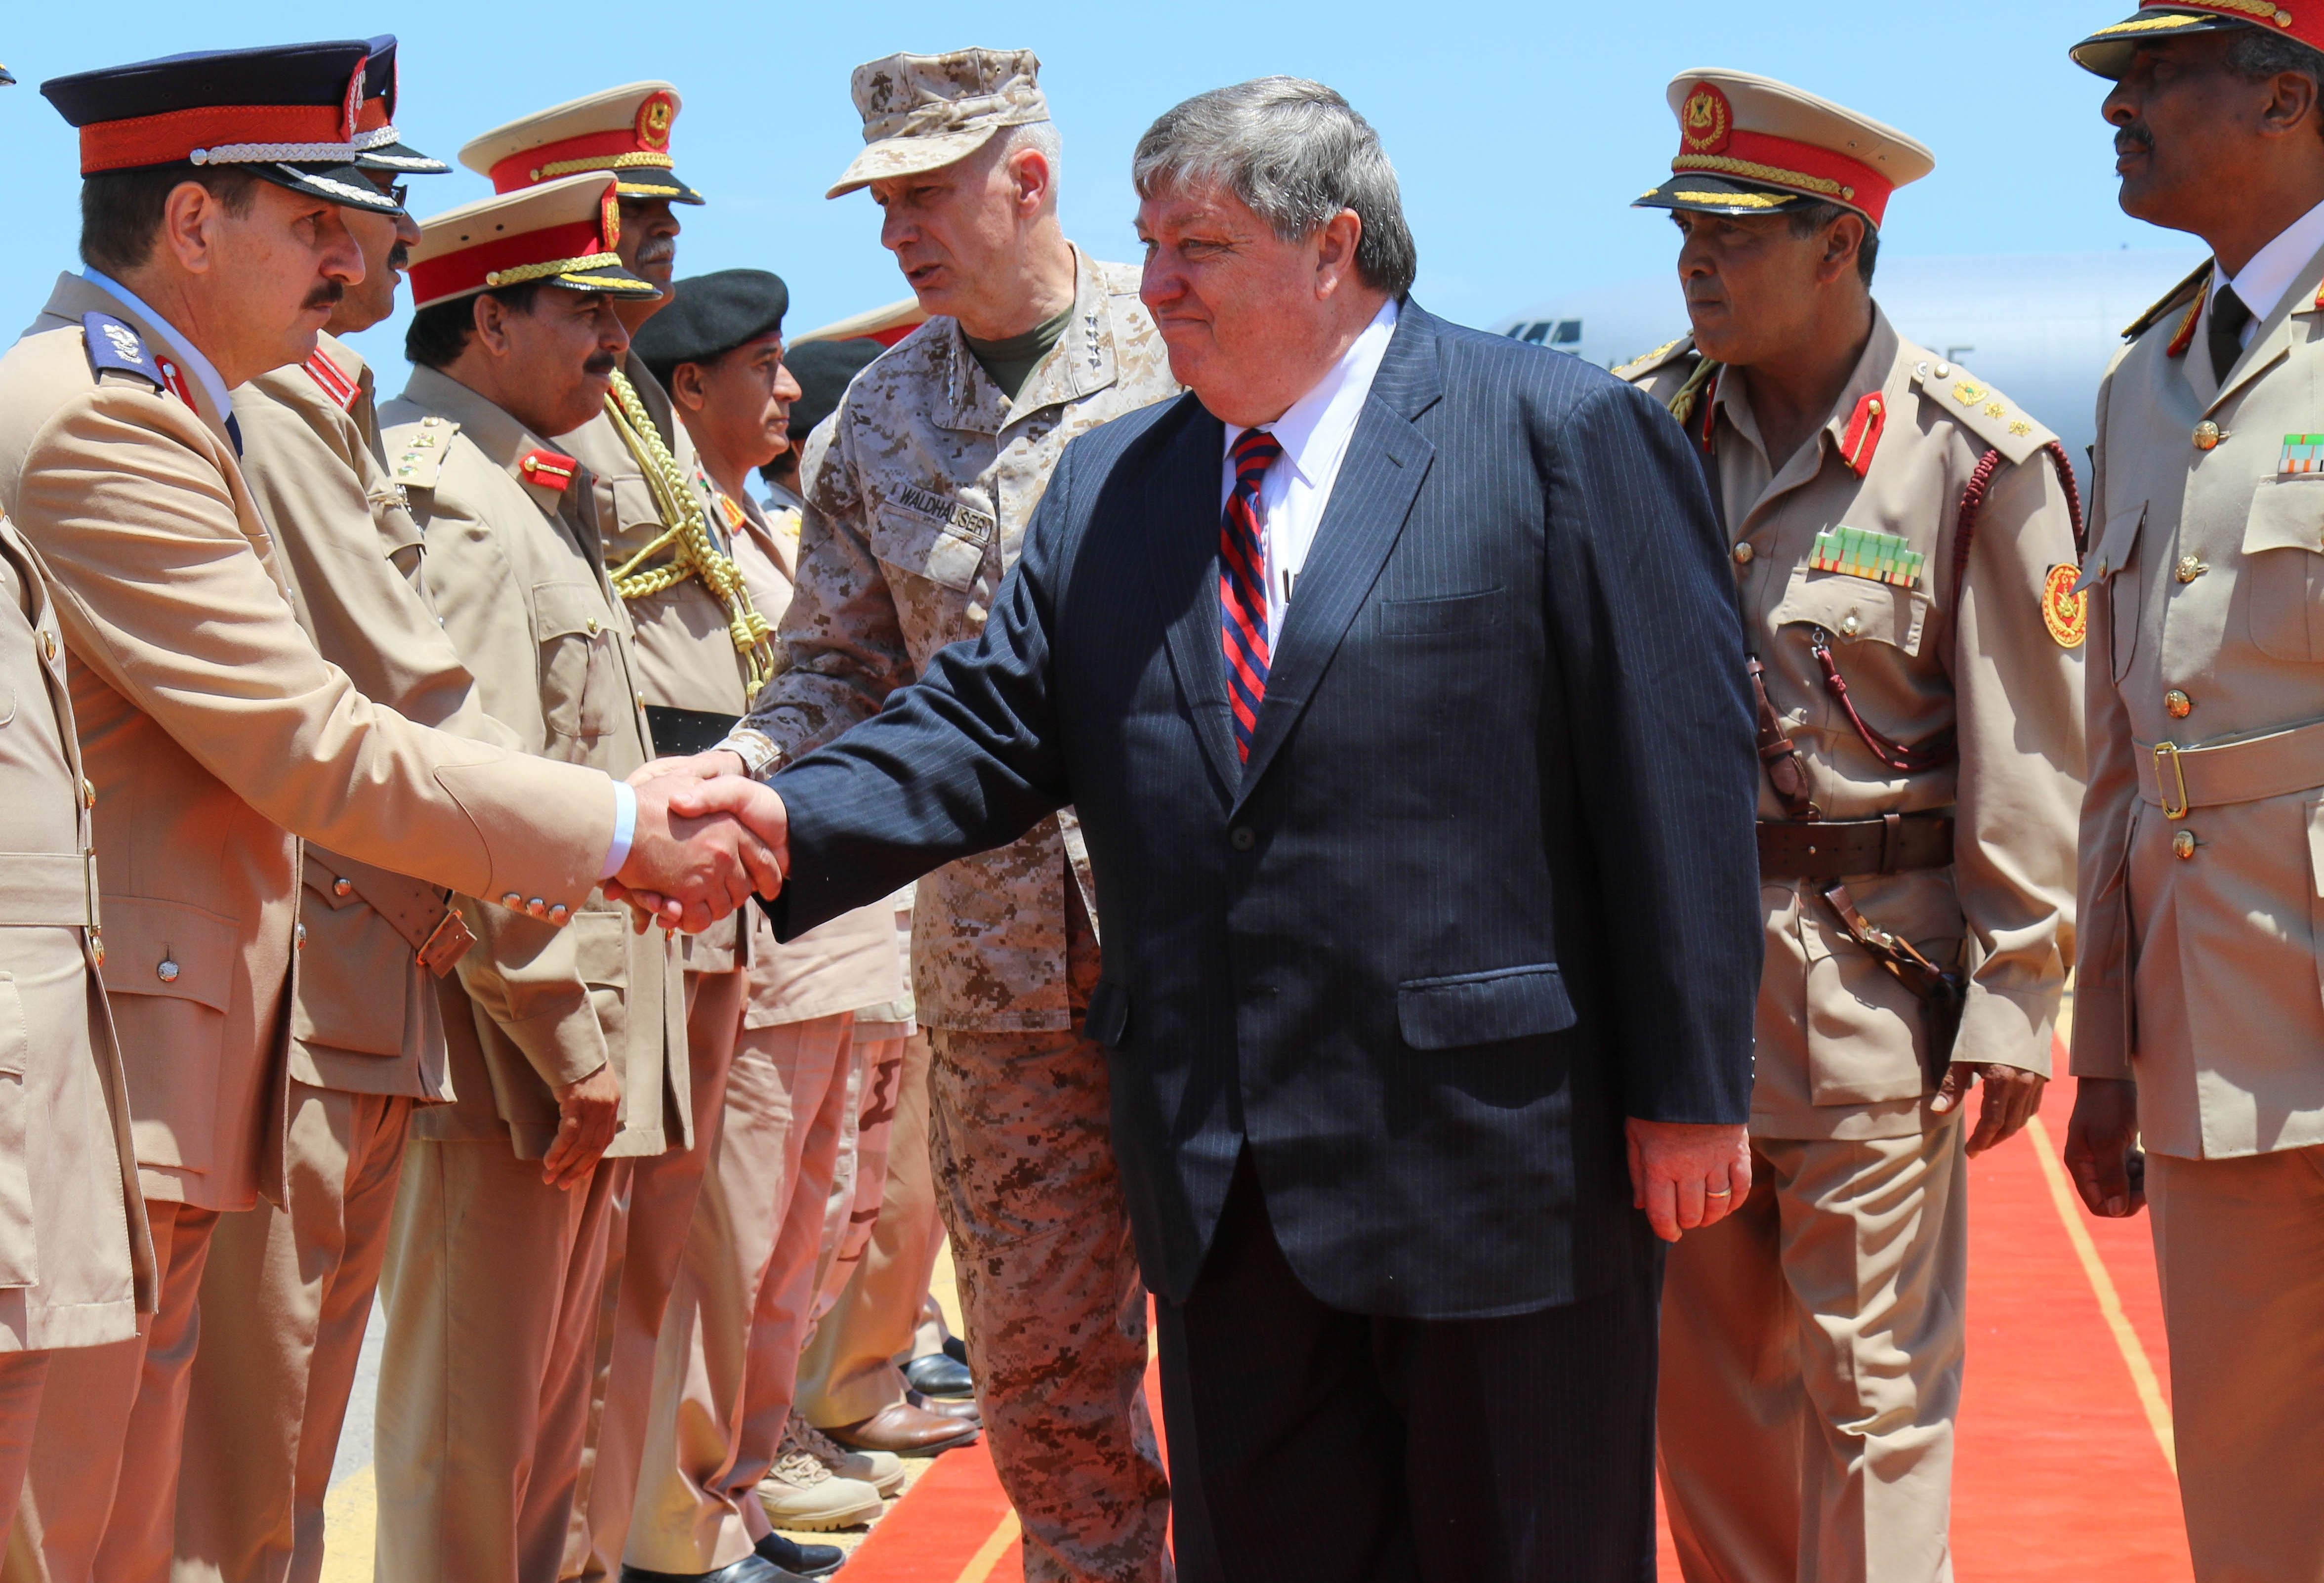 U.S. Marine Corps Gen. Thomas D. Waldhauser, commander, U.S. Africa Command and Amb. Peter Bodde, former U.S. Ambassador to Libya and current Chargé d'affaires a.i. at the Libya External Office, greet members of the Libyan Army during a visit to Libya in May 2017.